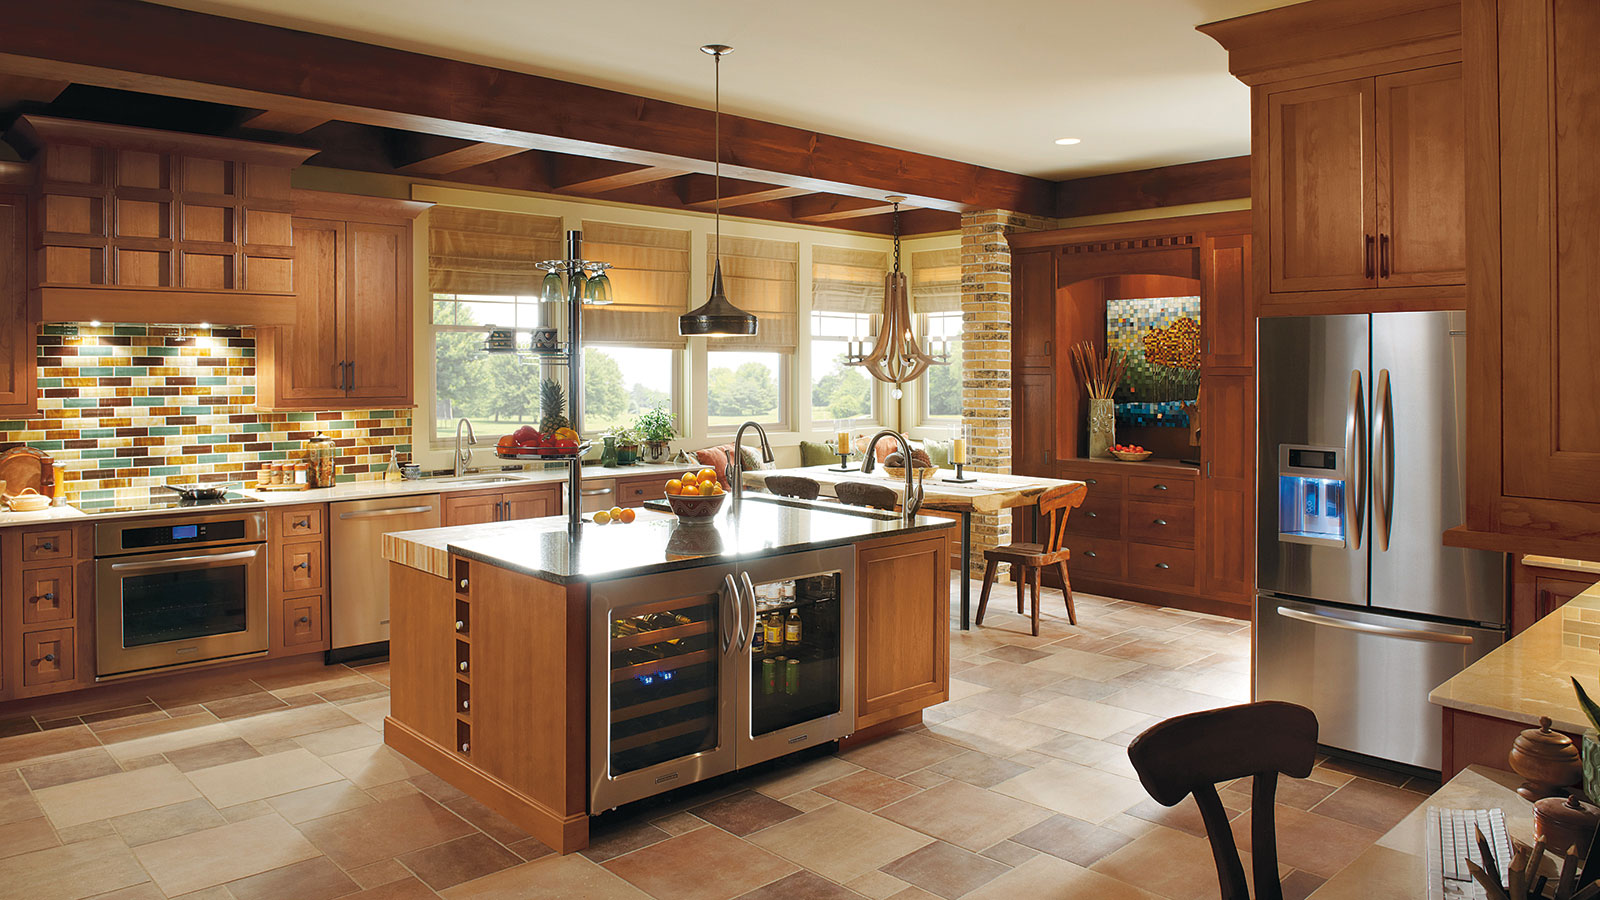 omega kitchen cabinets cherry wood cabinets kitchen Popular Cabinet Colors Bray Scarff Kitchen